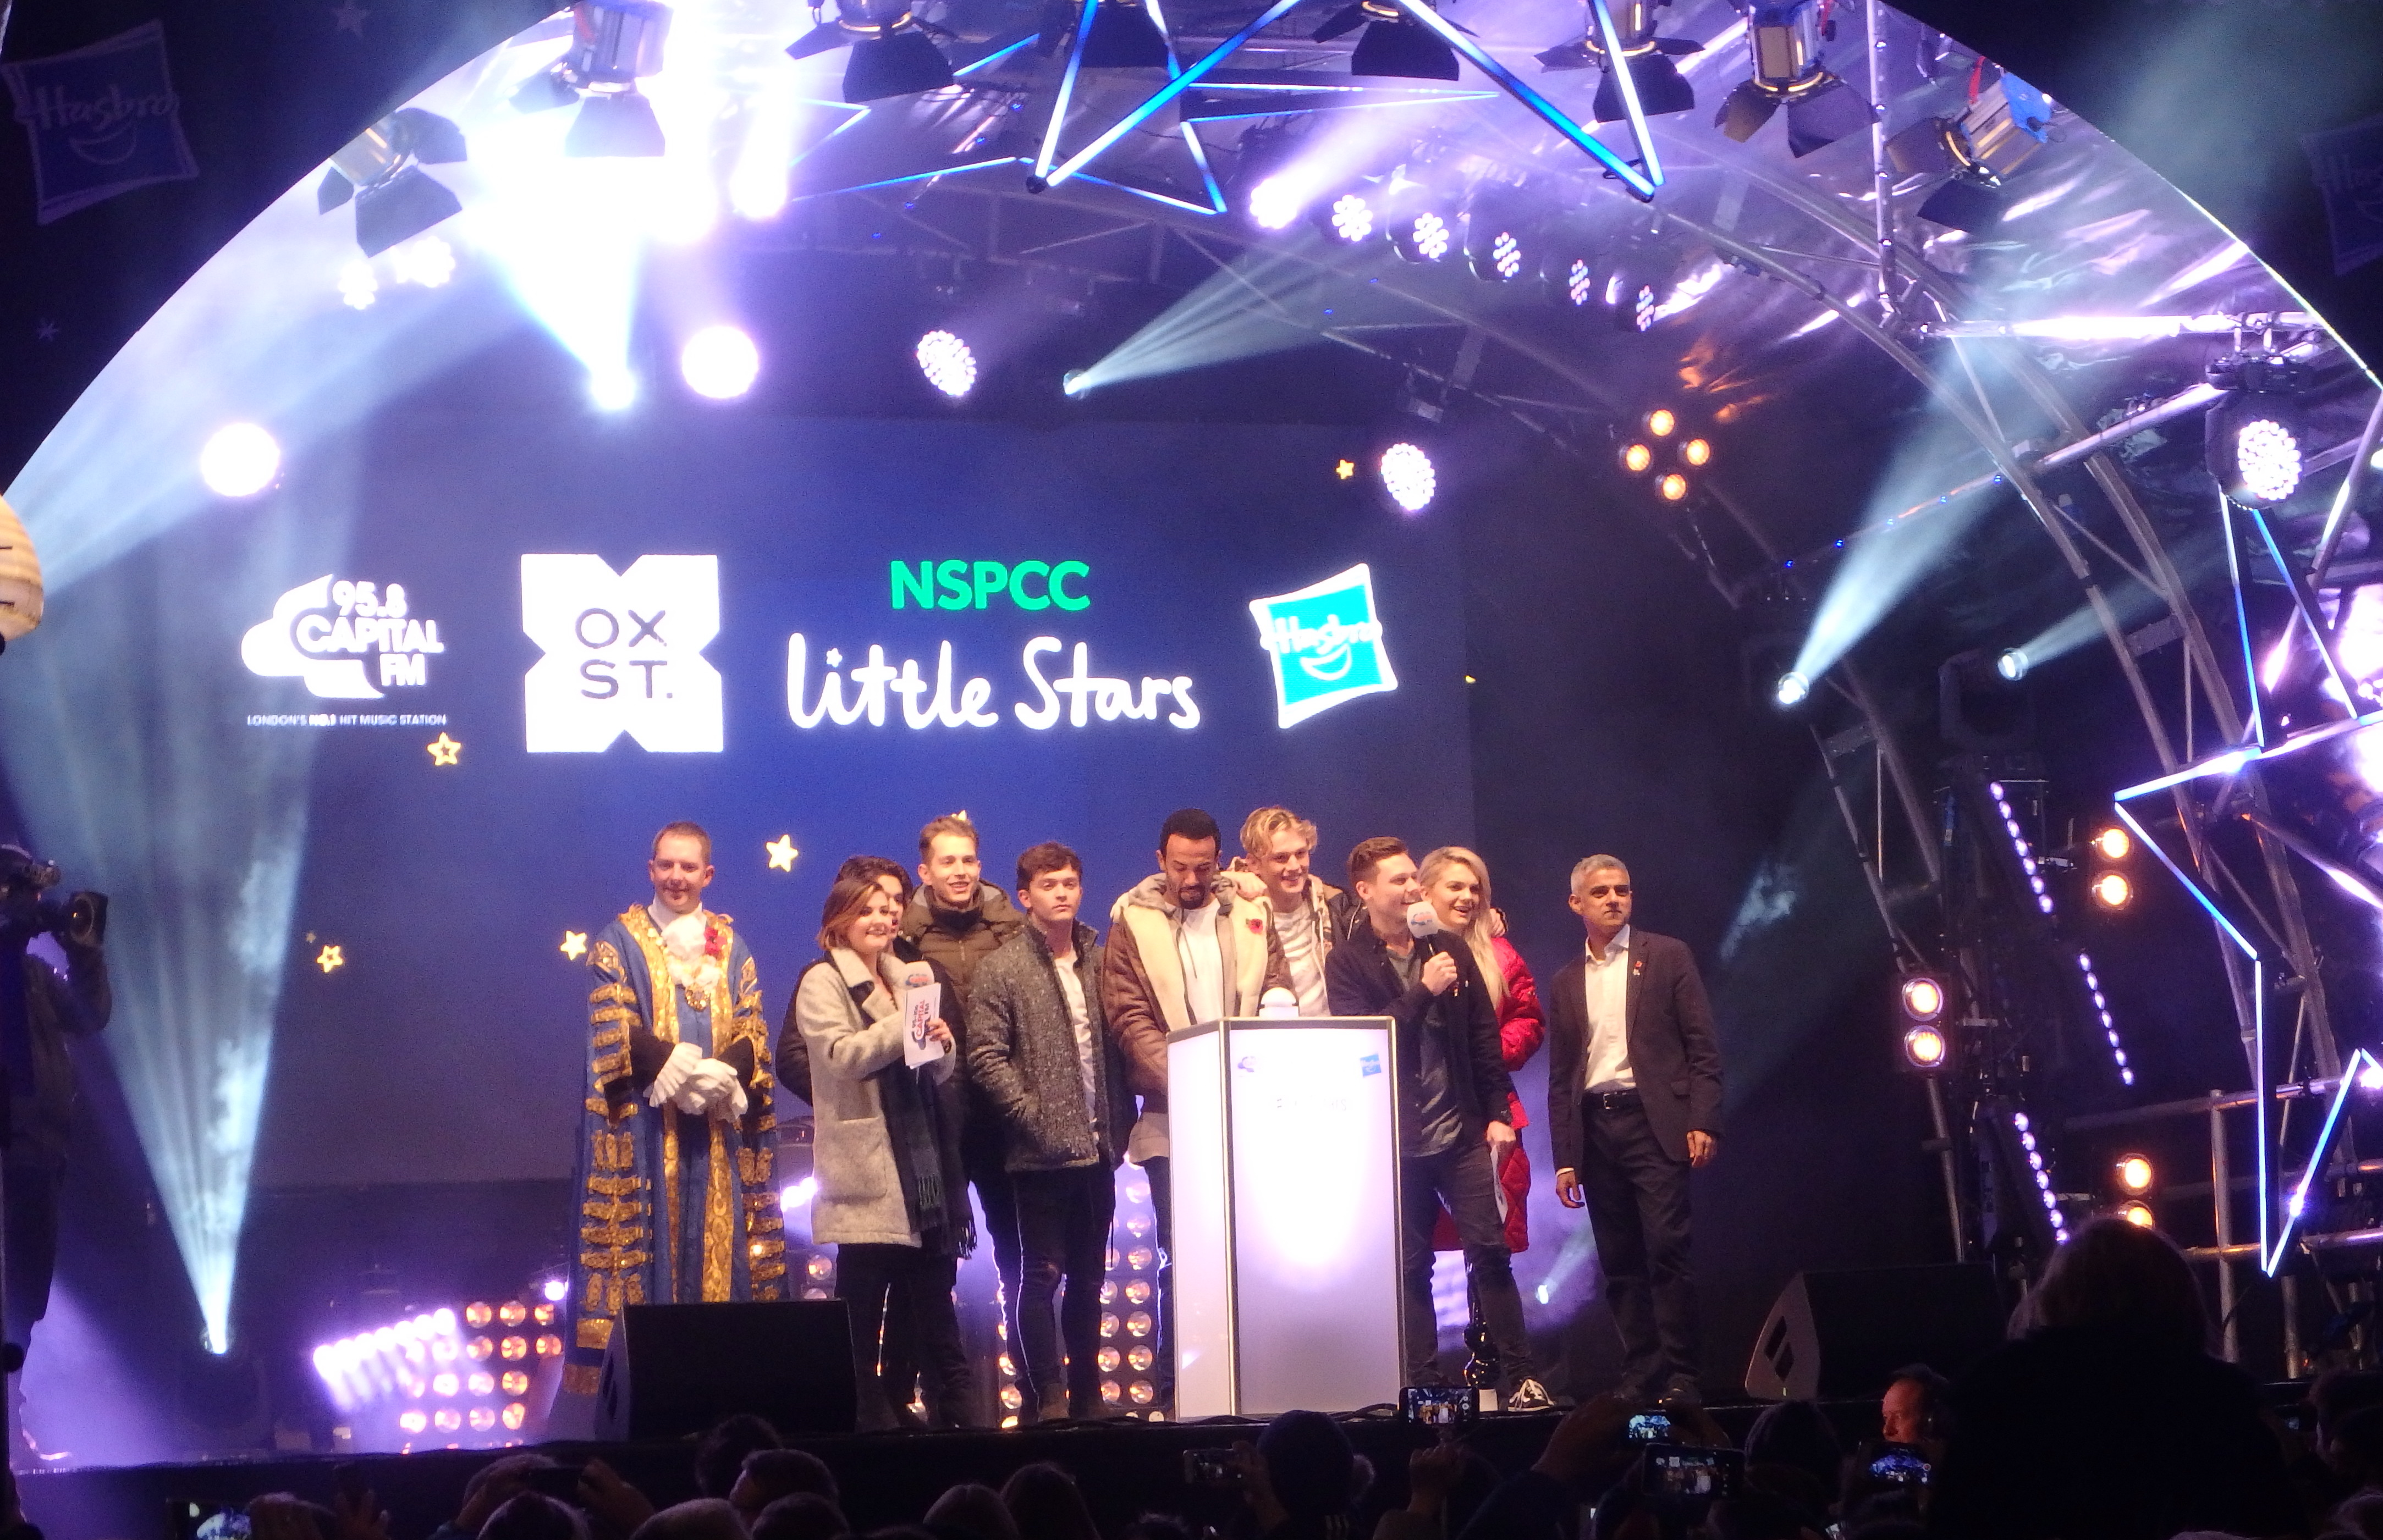 Avolites gets festive on Oxford Street for NSPCC Little Stars